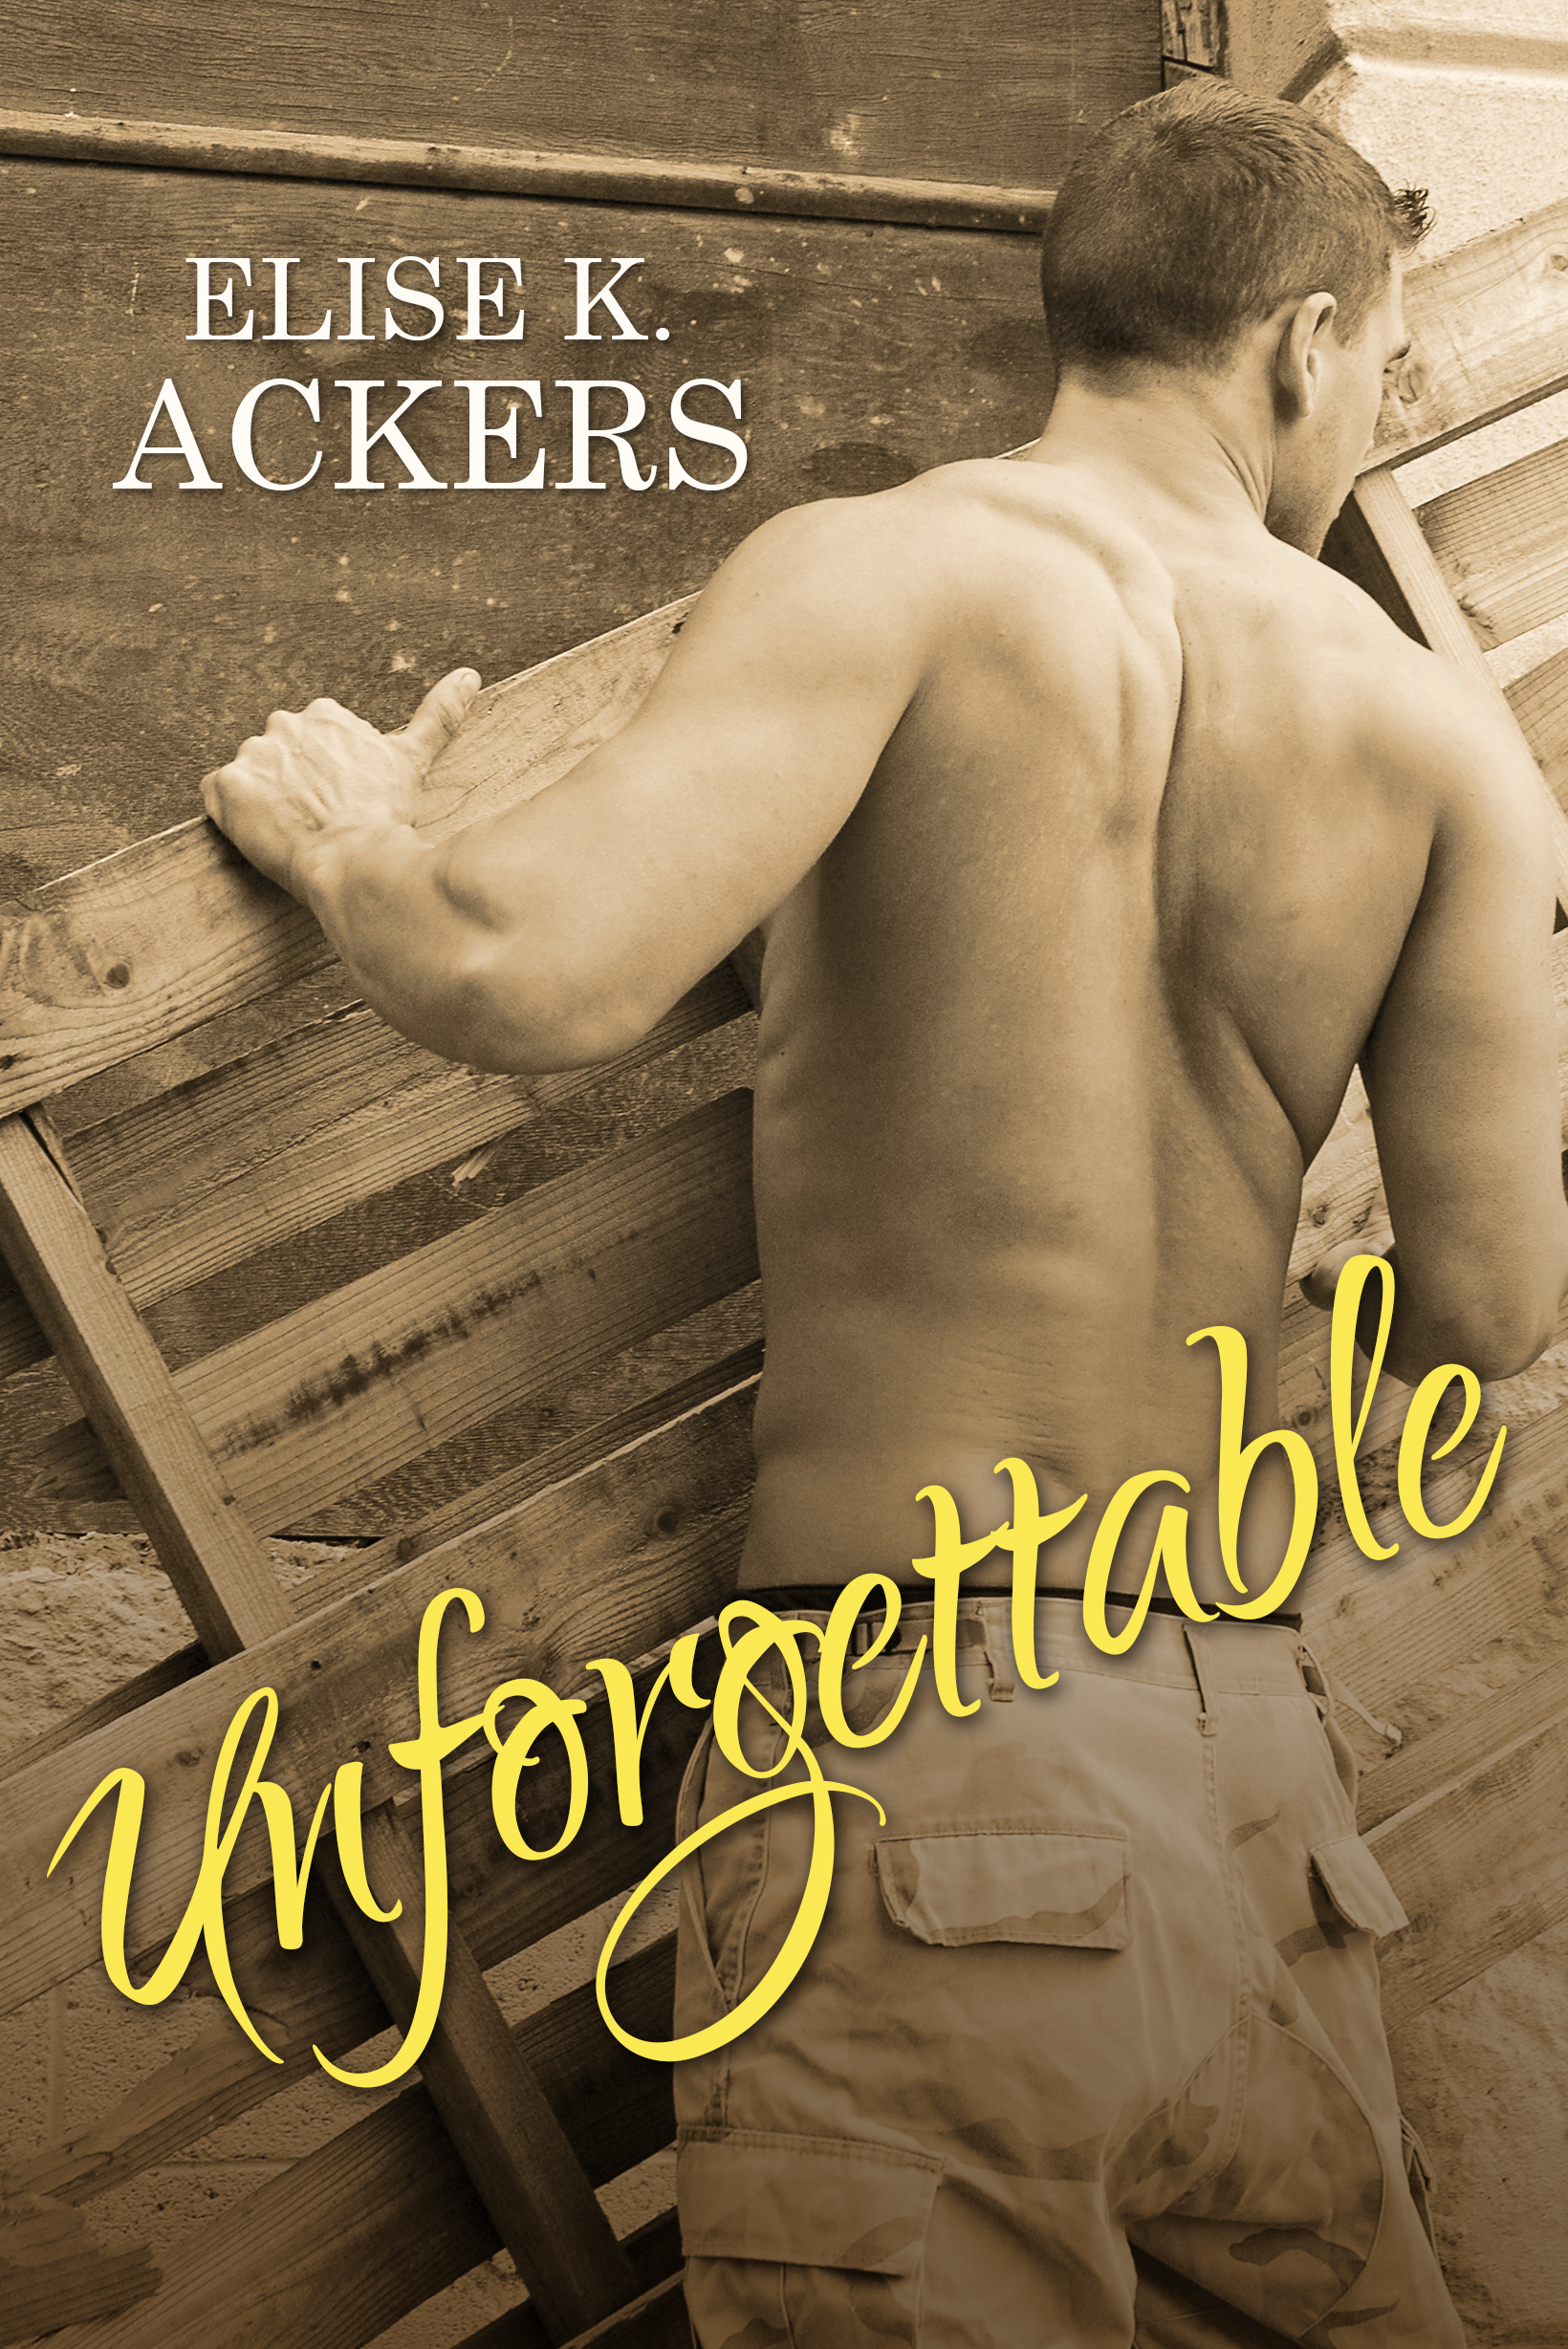 Unforgettable cover, Elise K. Ackers